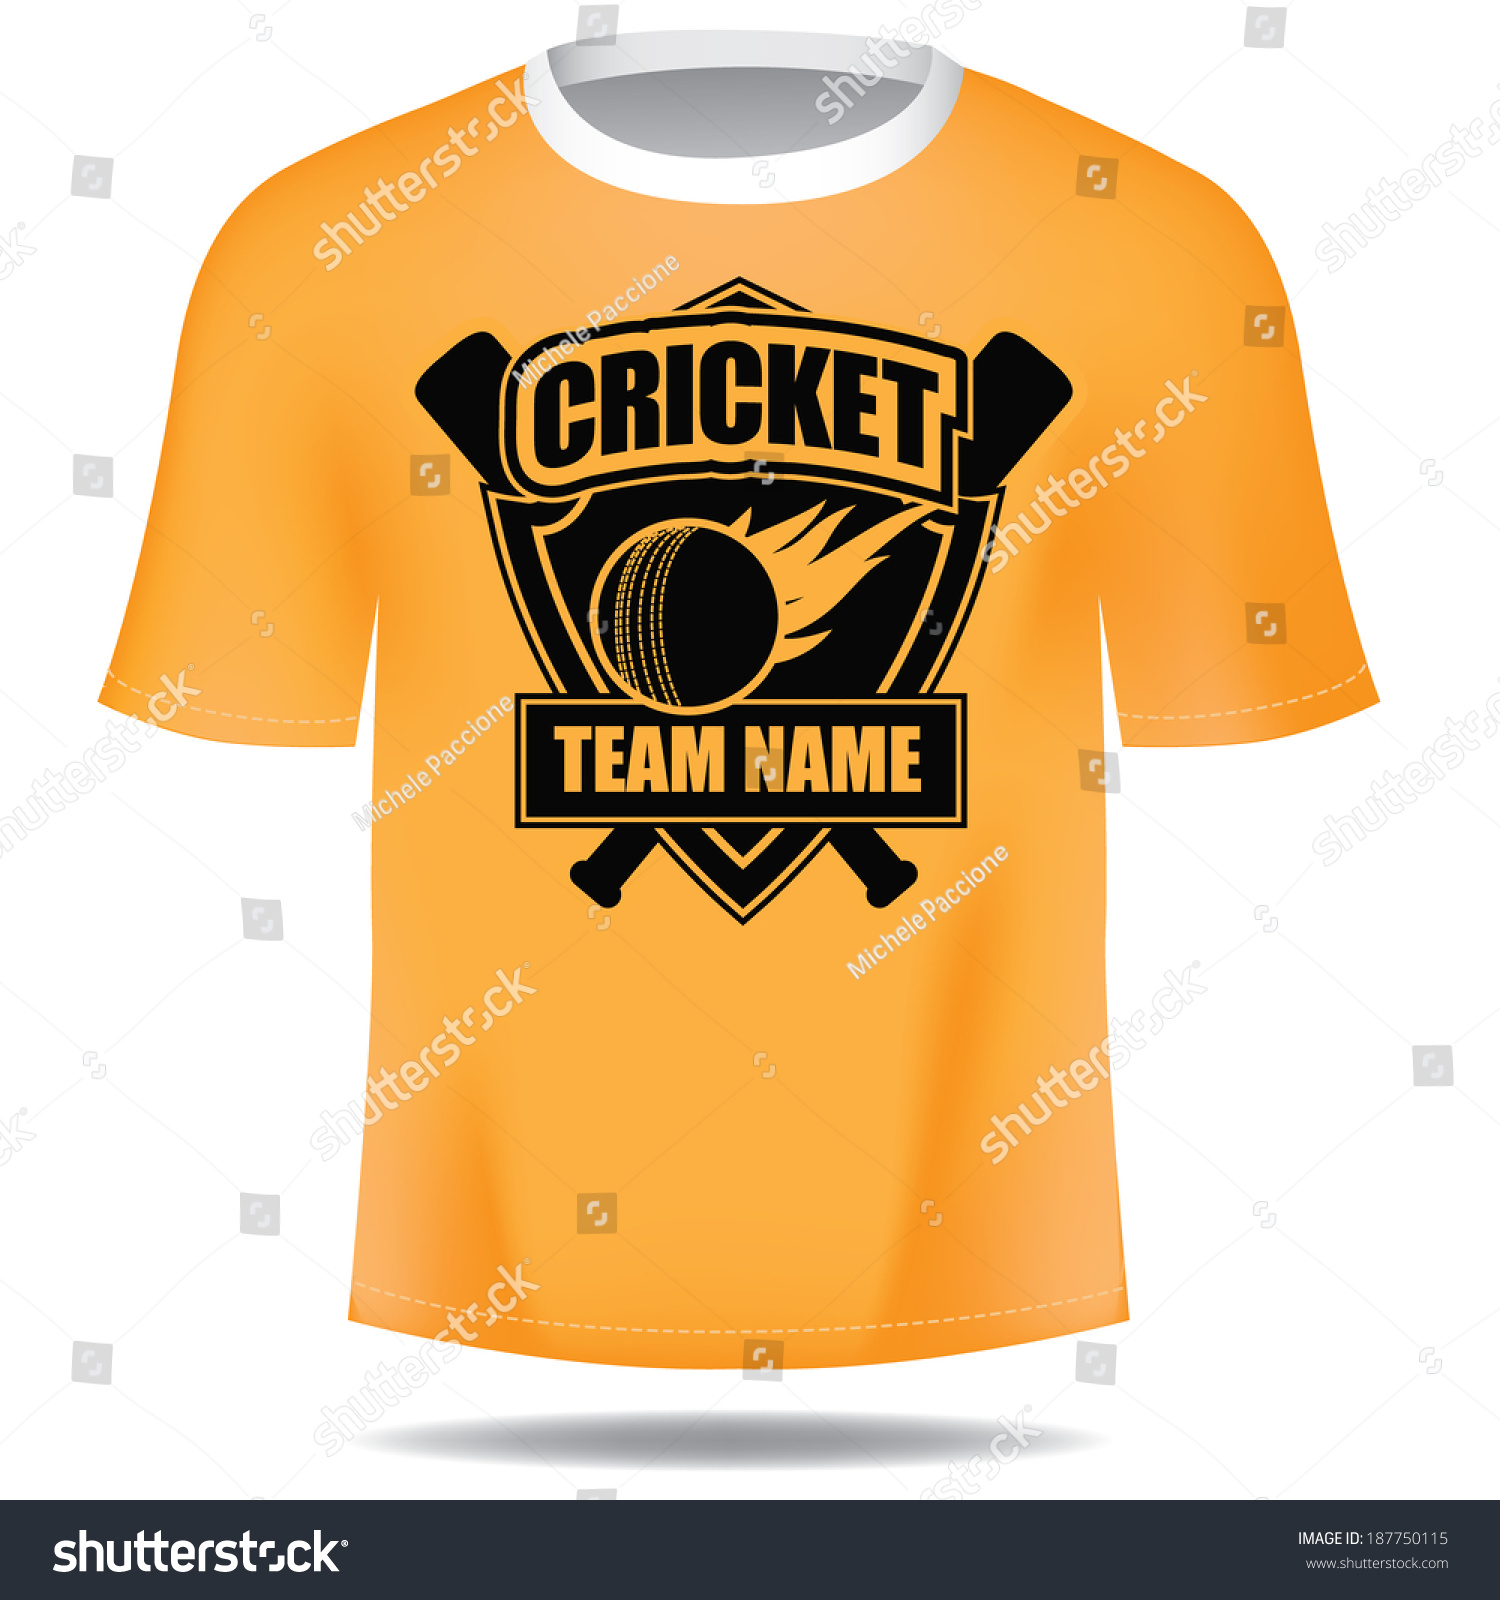 White t shirt eps - Cricket Emblem Tee Shirt Eps 10 Vector Grouped For Easy Editing No Open Shapes